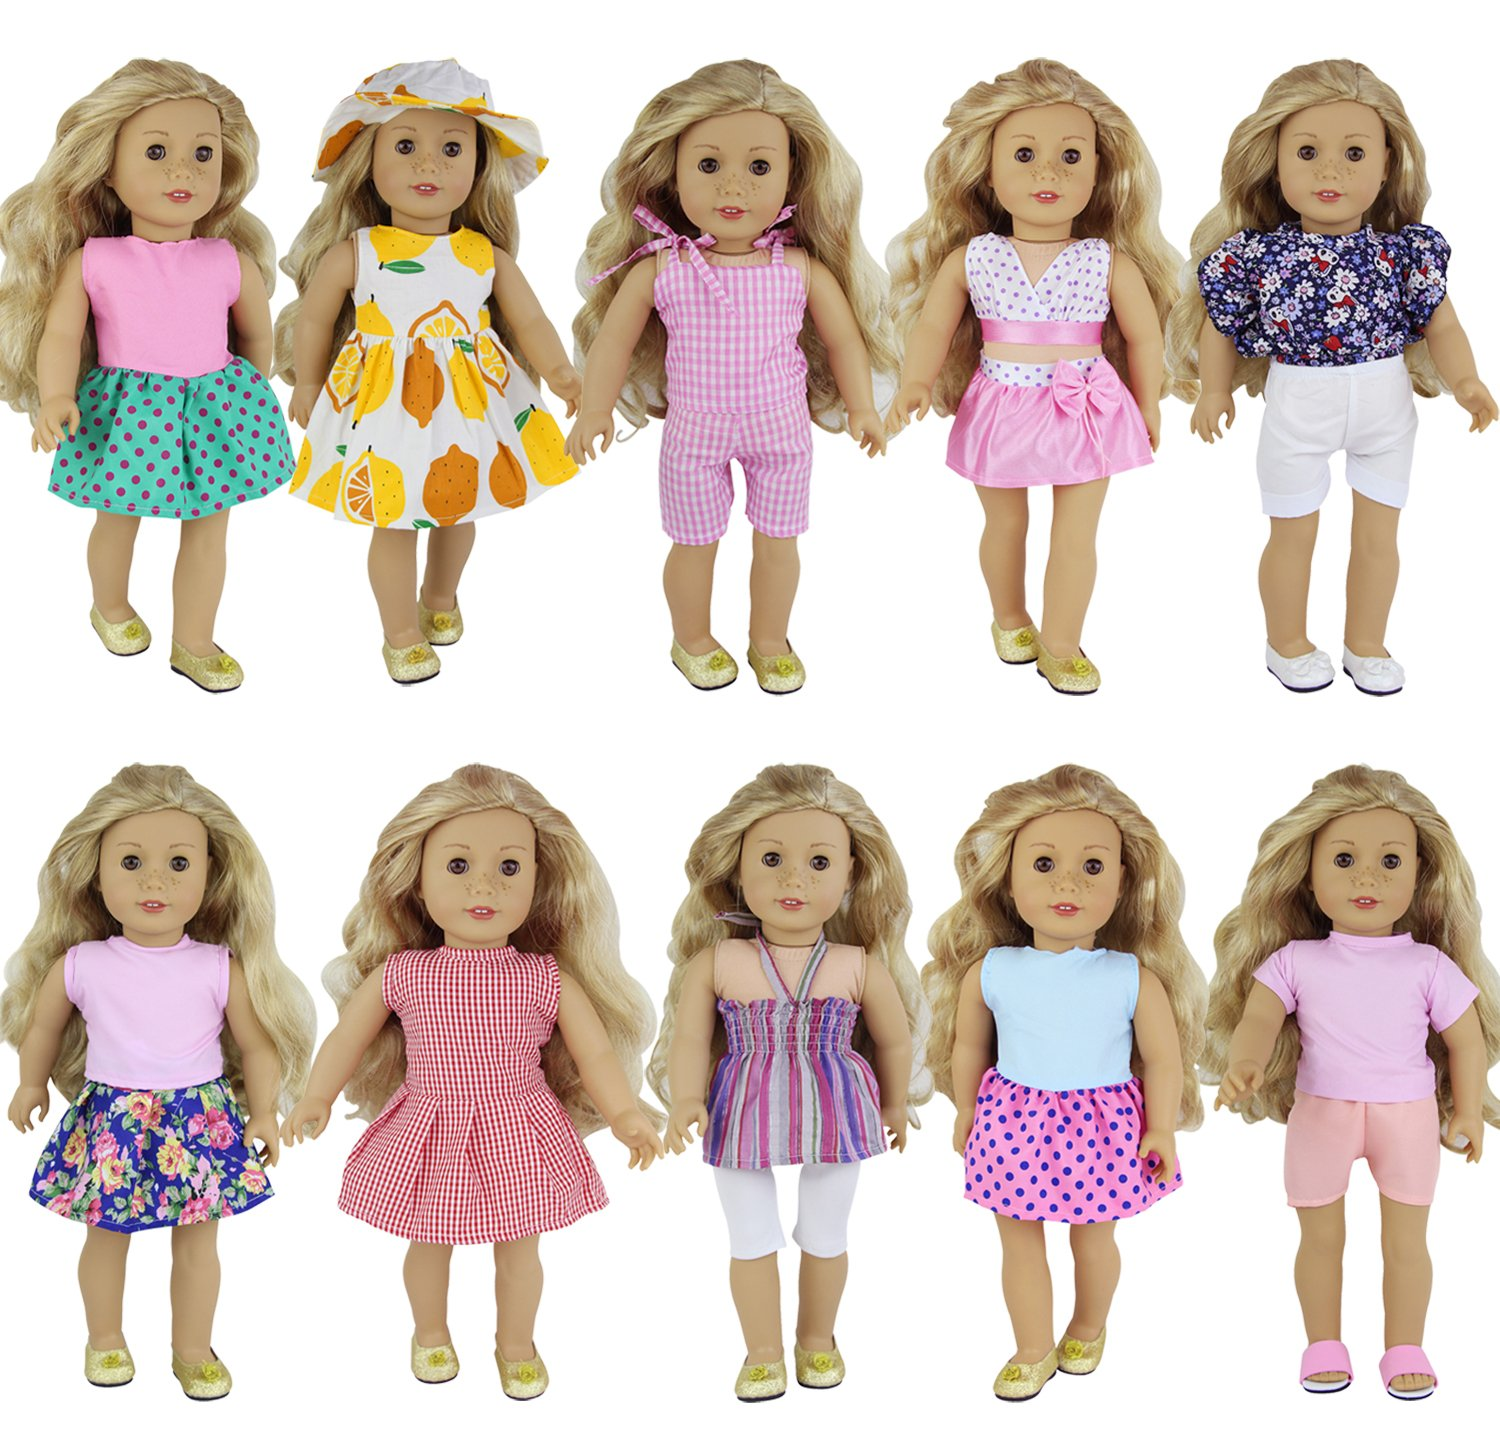 ZITA ELEMENT 10 Sets Clothes American Girl Doll | Handmade Fashion Oufits, Daily/Party Dress, Accessories Fits 16-18 inch Dolls